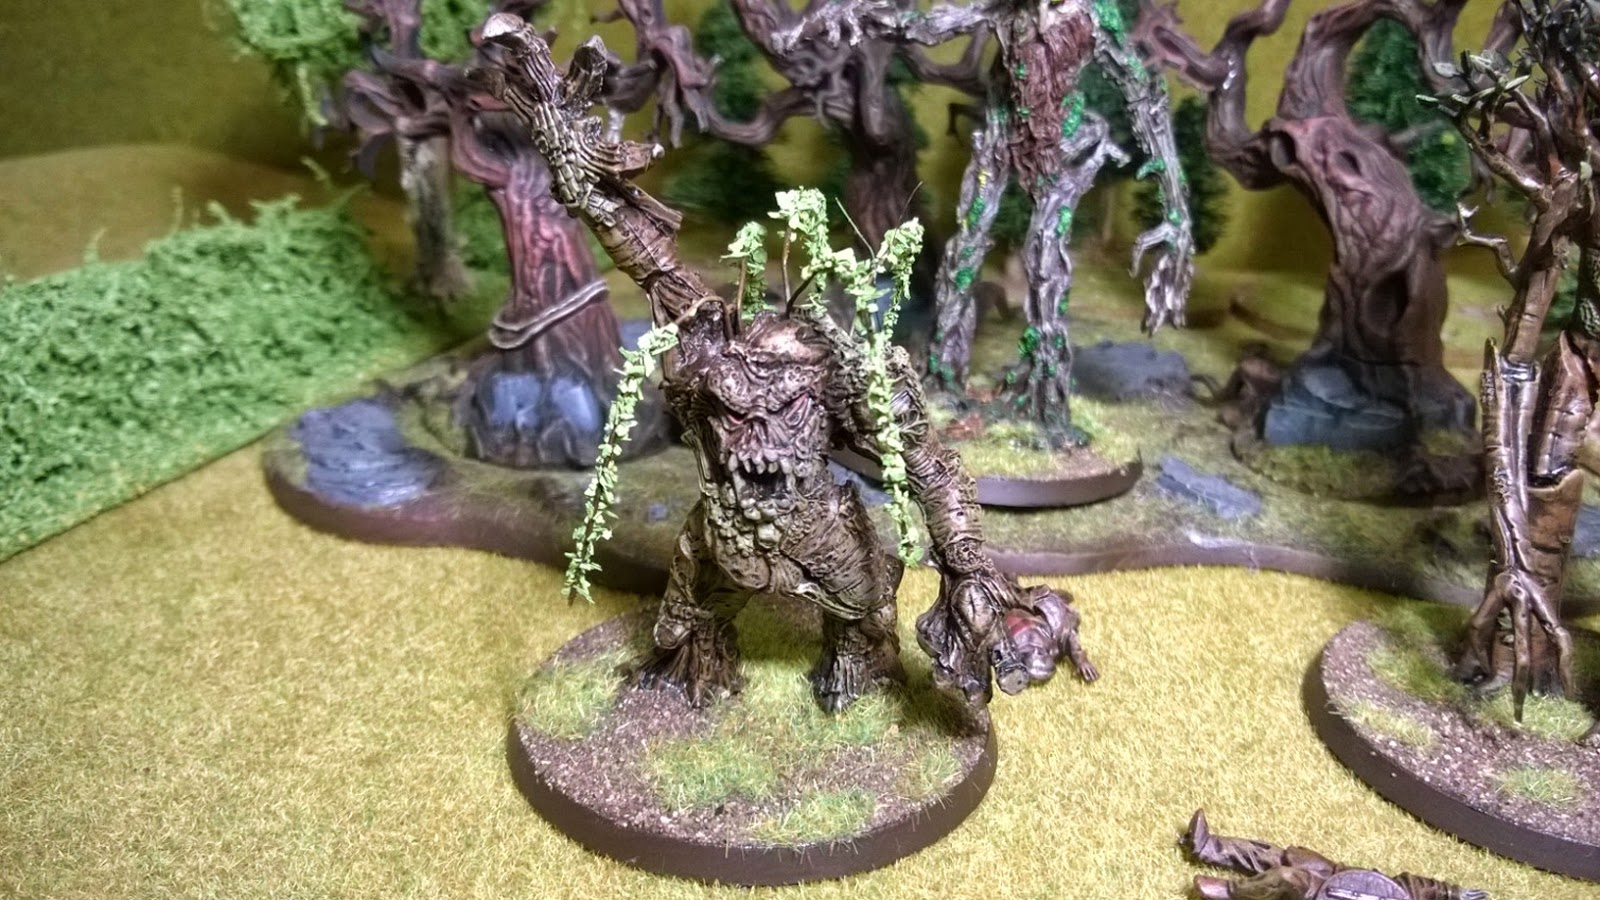 converted lotr ent warhammer fantasy treeman oop metal willow